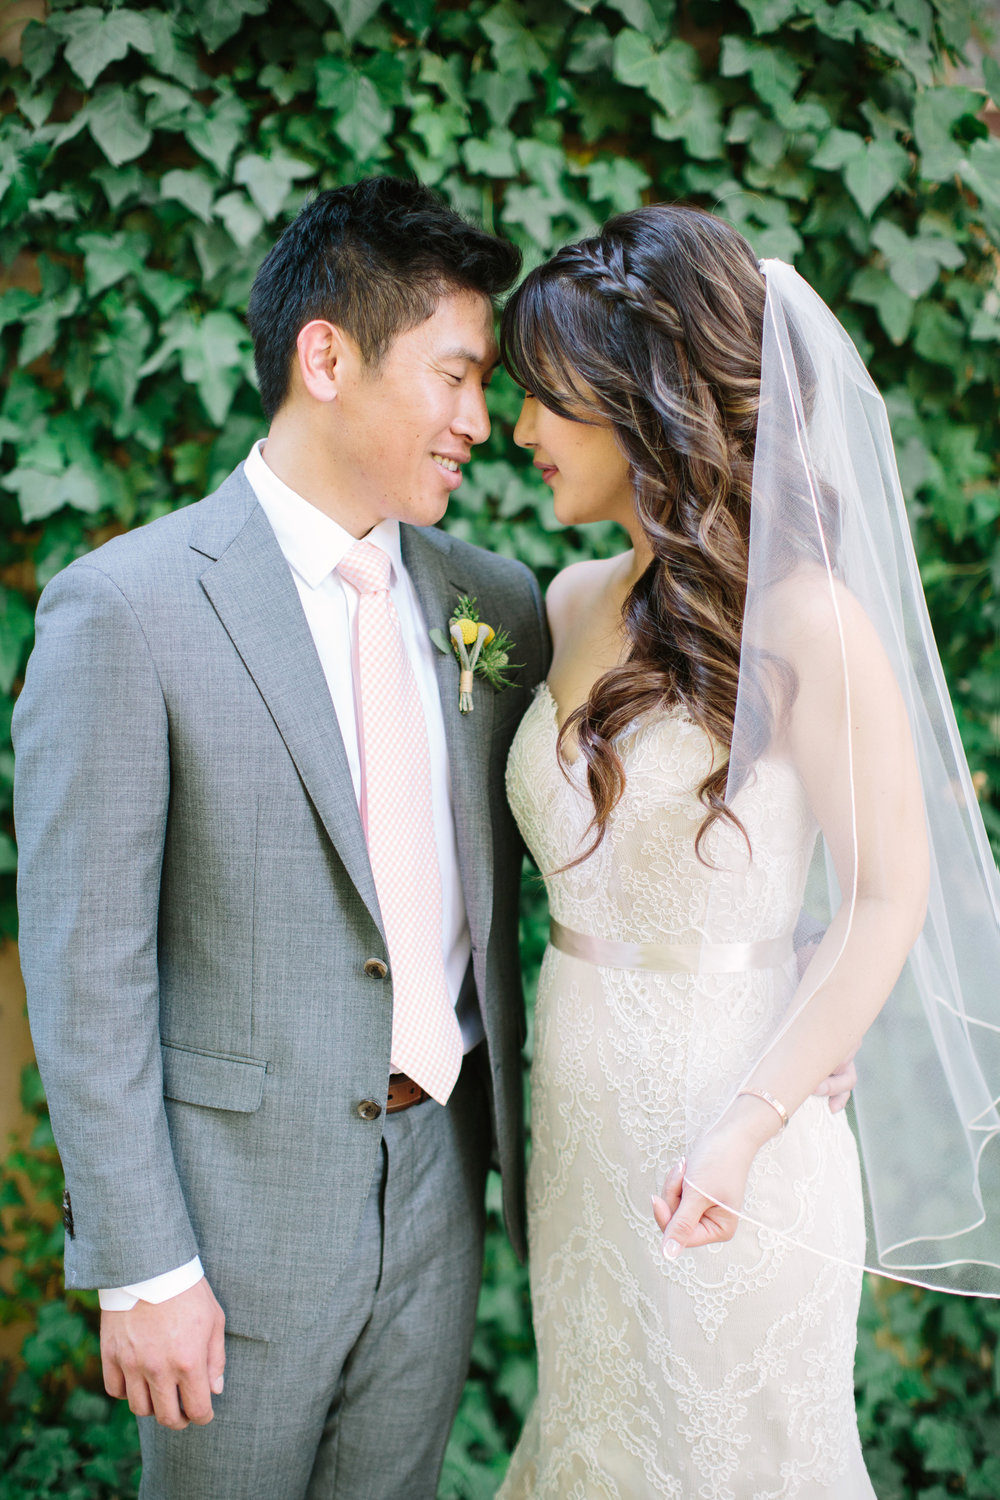 This-Love-of-Yours-Aya-and-Frank-Wedding-197.jpg